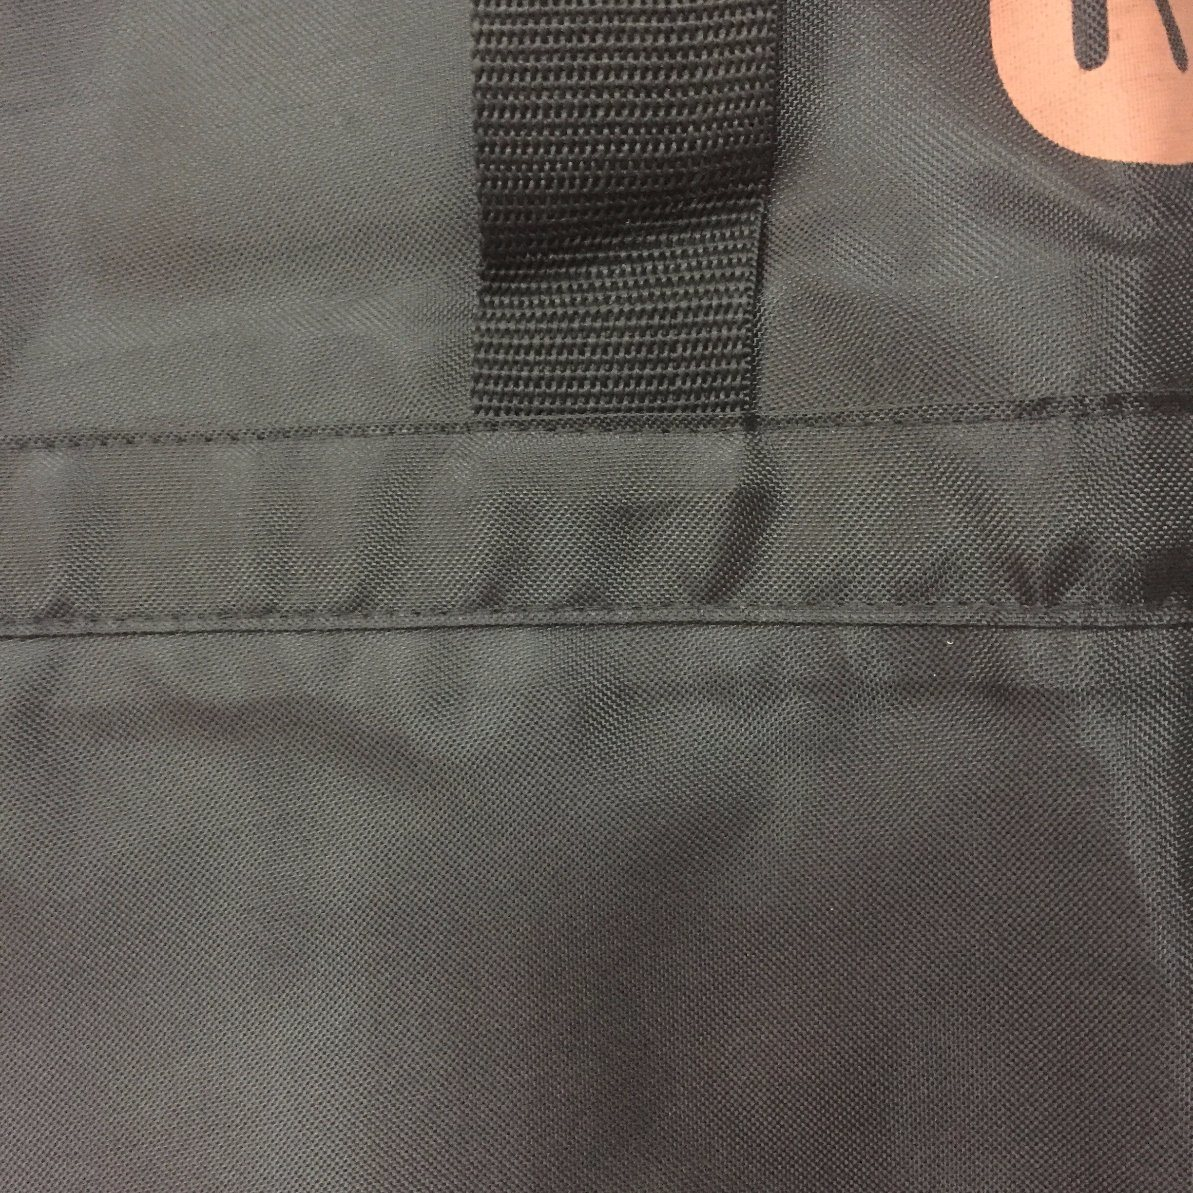 Non-Woven Foldable Suit Cover Garment Bag for Protection